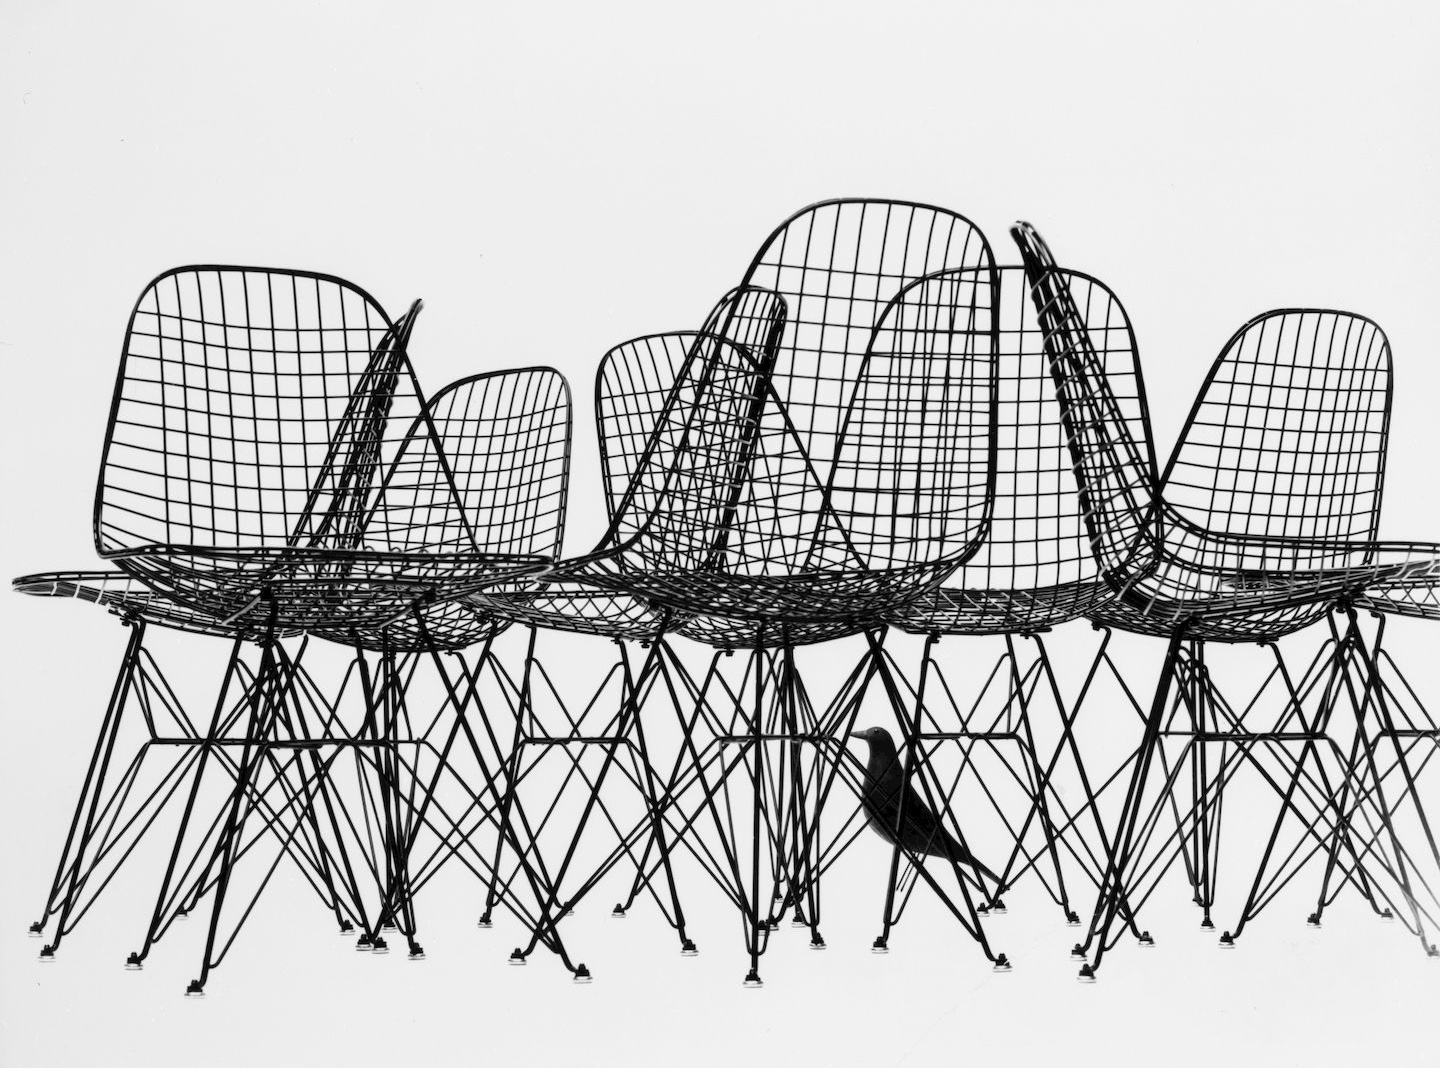 This famous image by Charles Eames shows the bird's silhouette set against a geometric grid of Eames Wire Chairs. Image © 2005 Eames Office, LLC via Vitra.